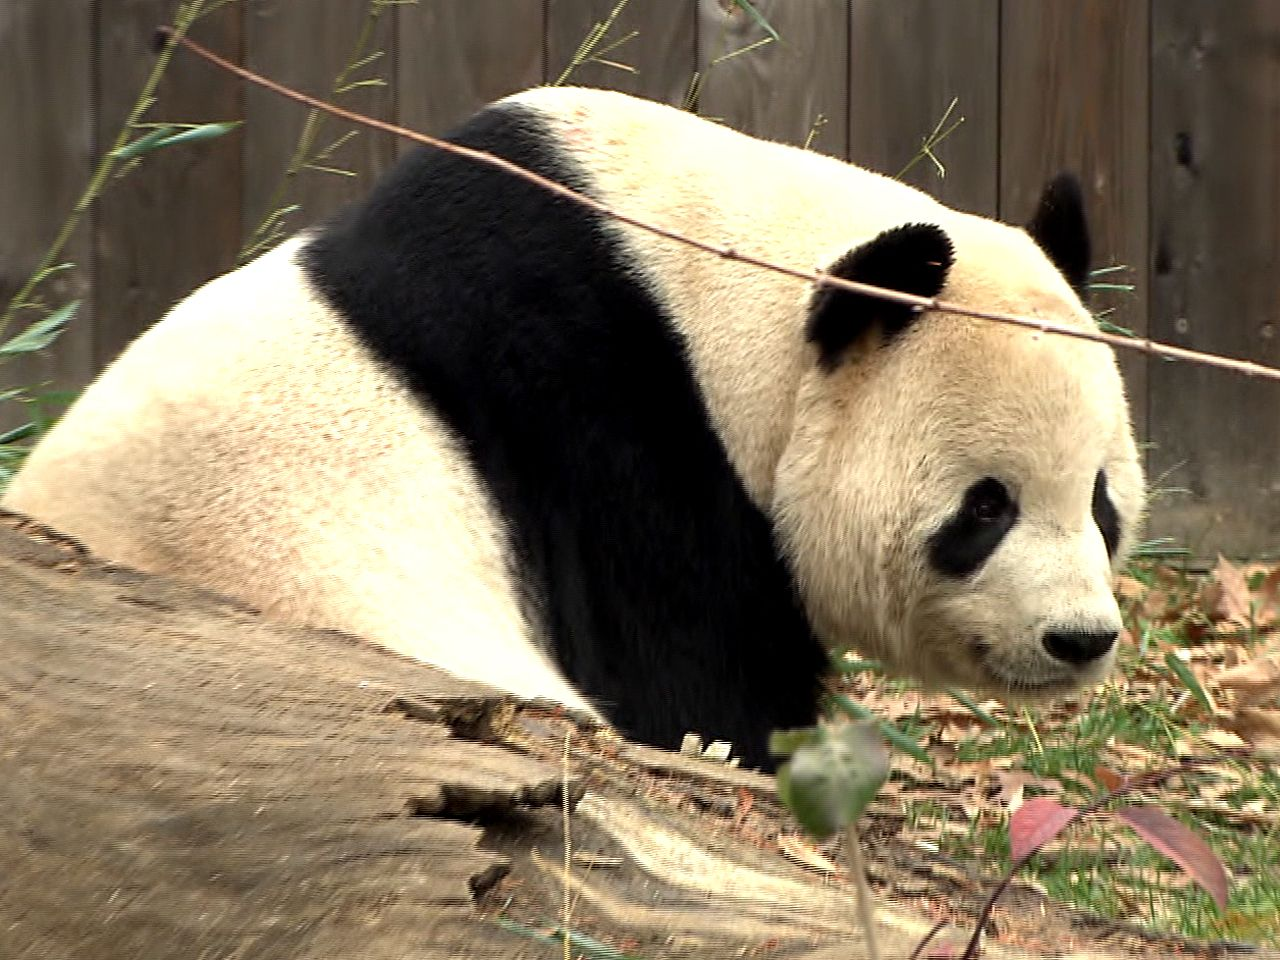 Panda mourns loss of her baby at National Zoo